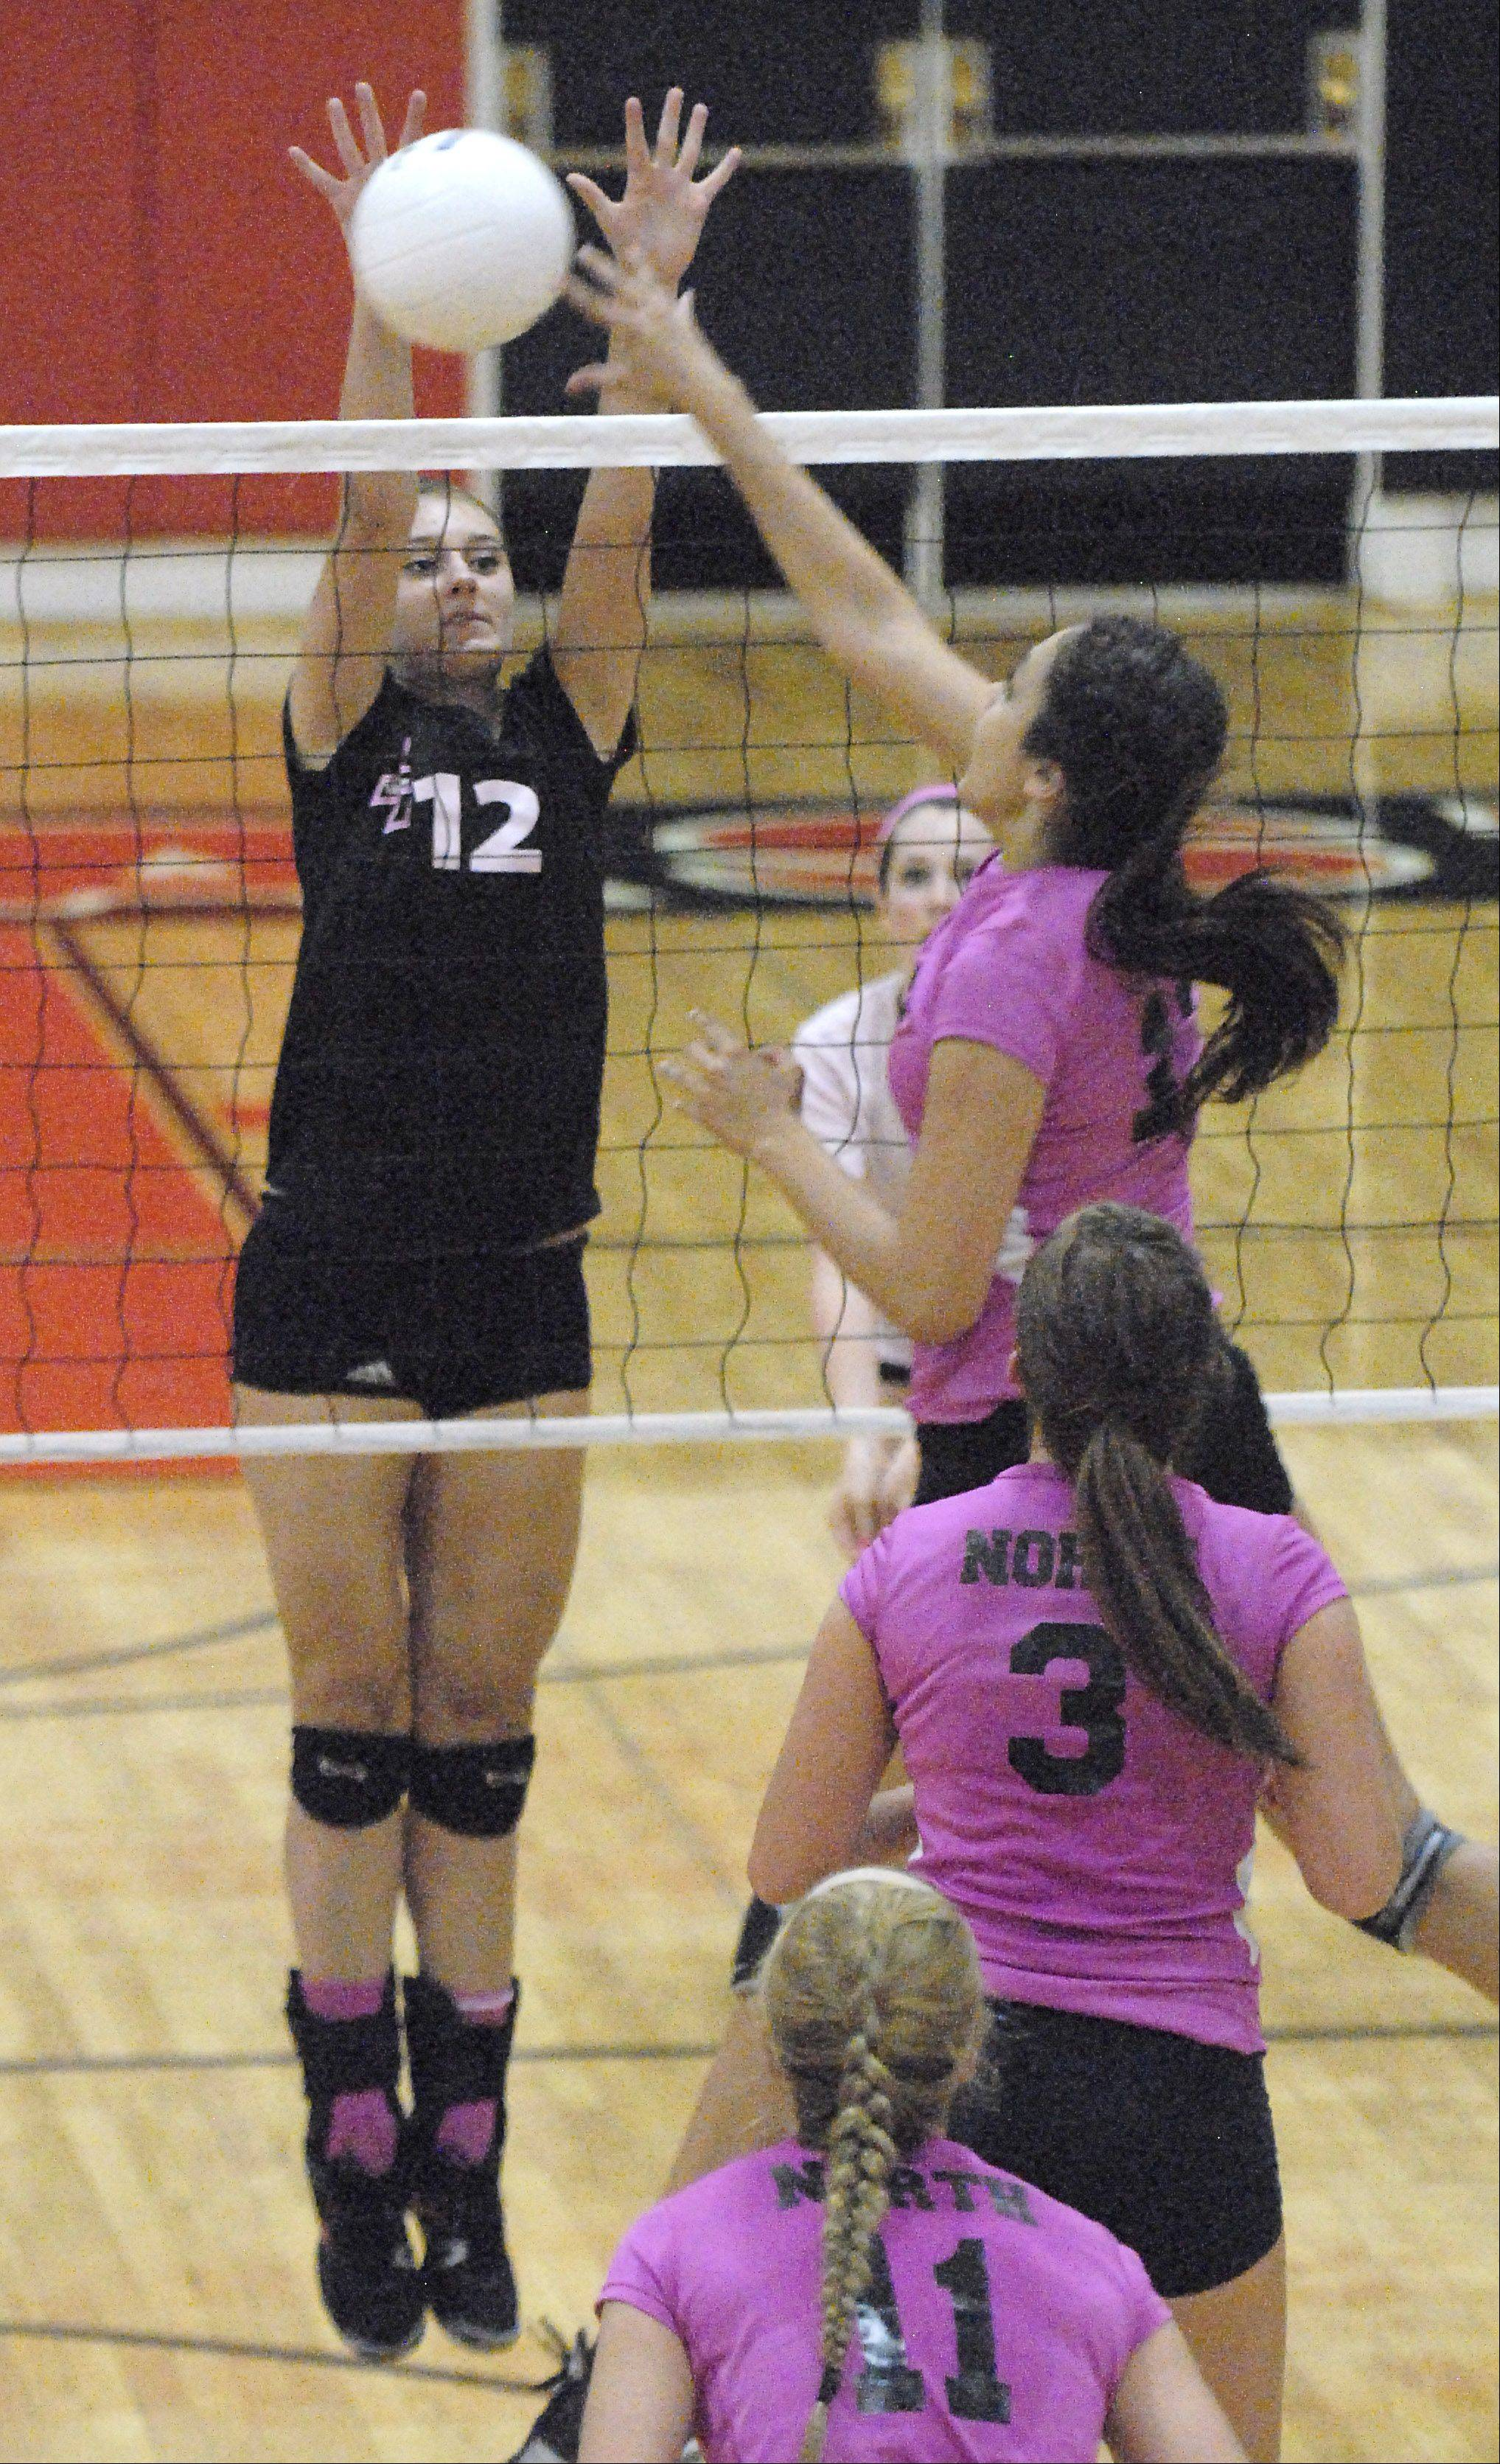 St. Charles North's Sophia DuVall tips the ball over to St. Charles East's Ashley Bullock in game two on Tuesday, September 11.